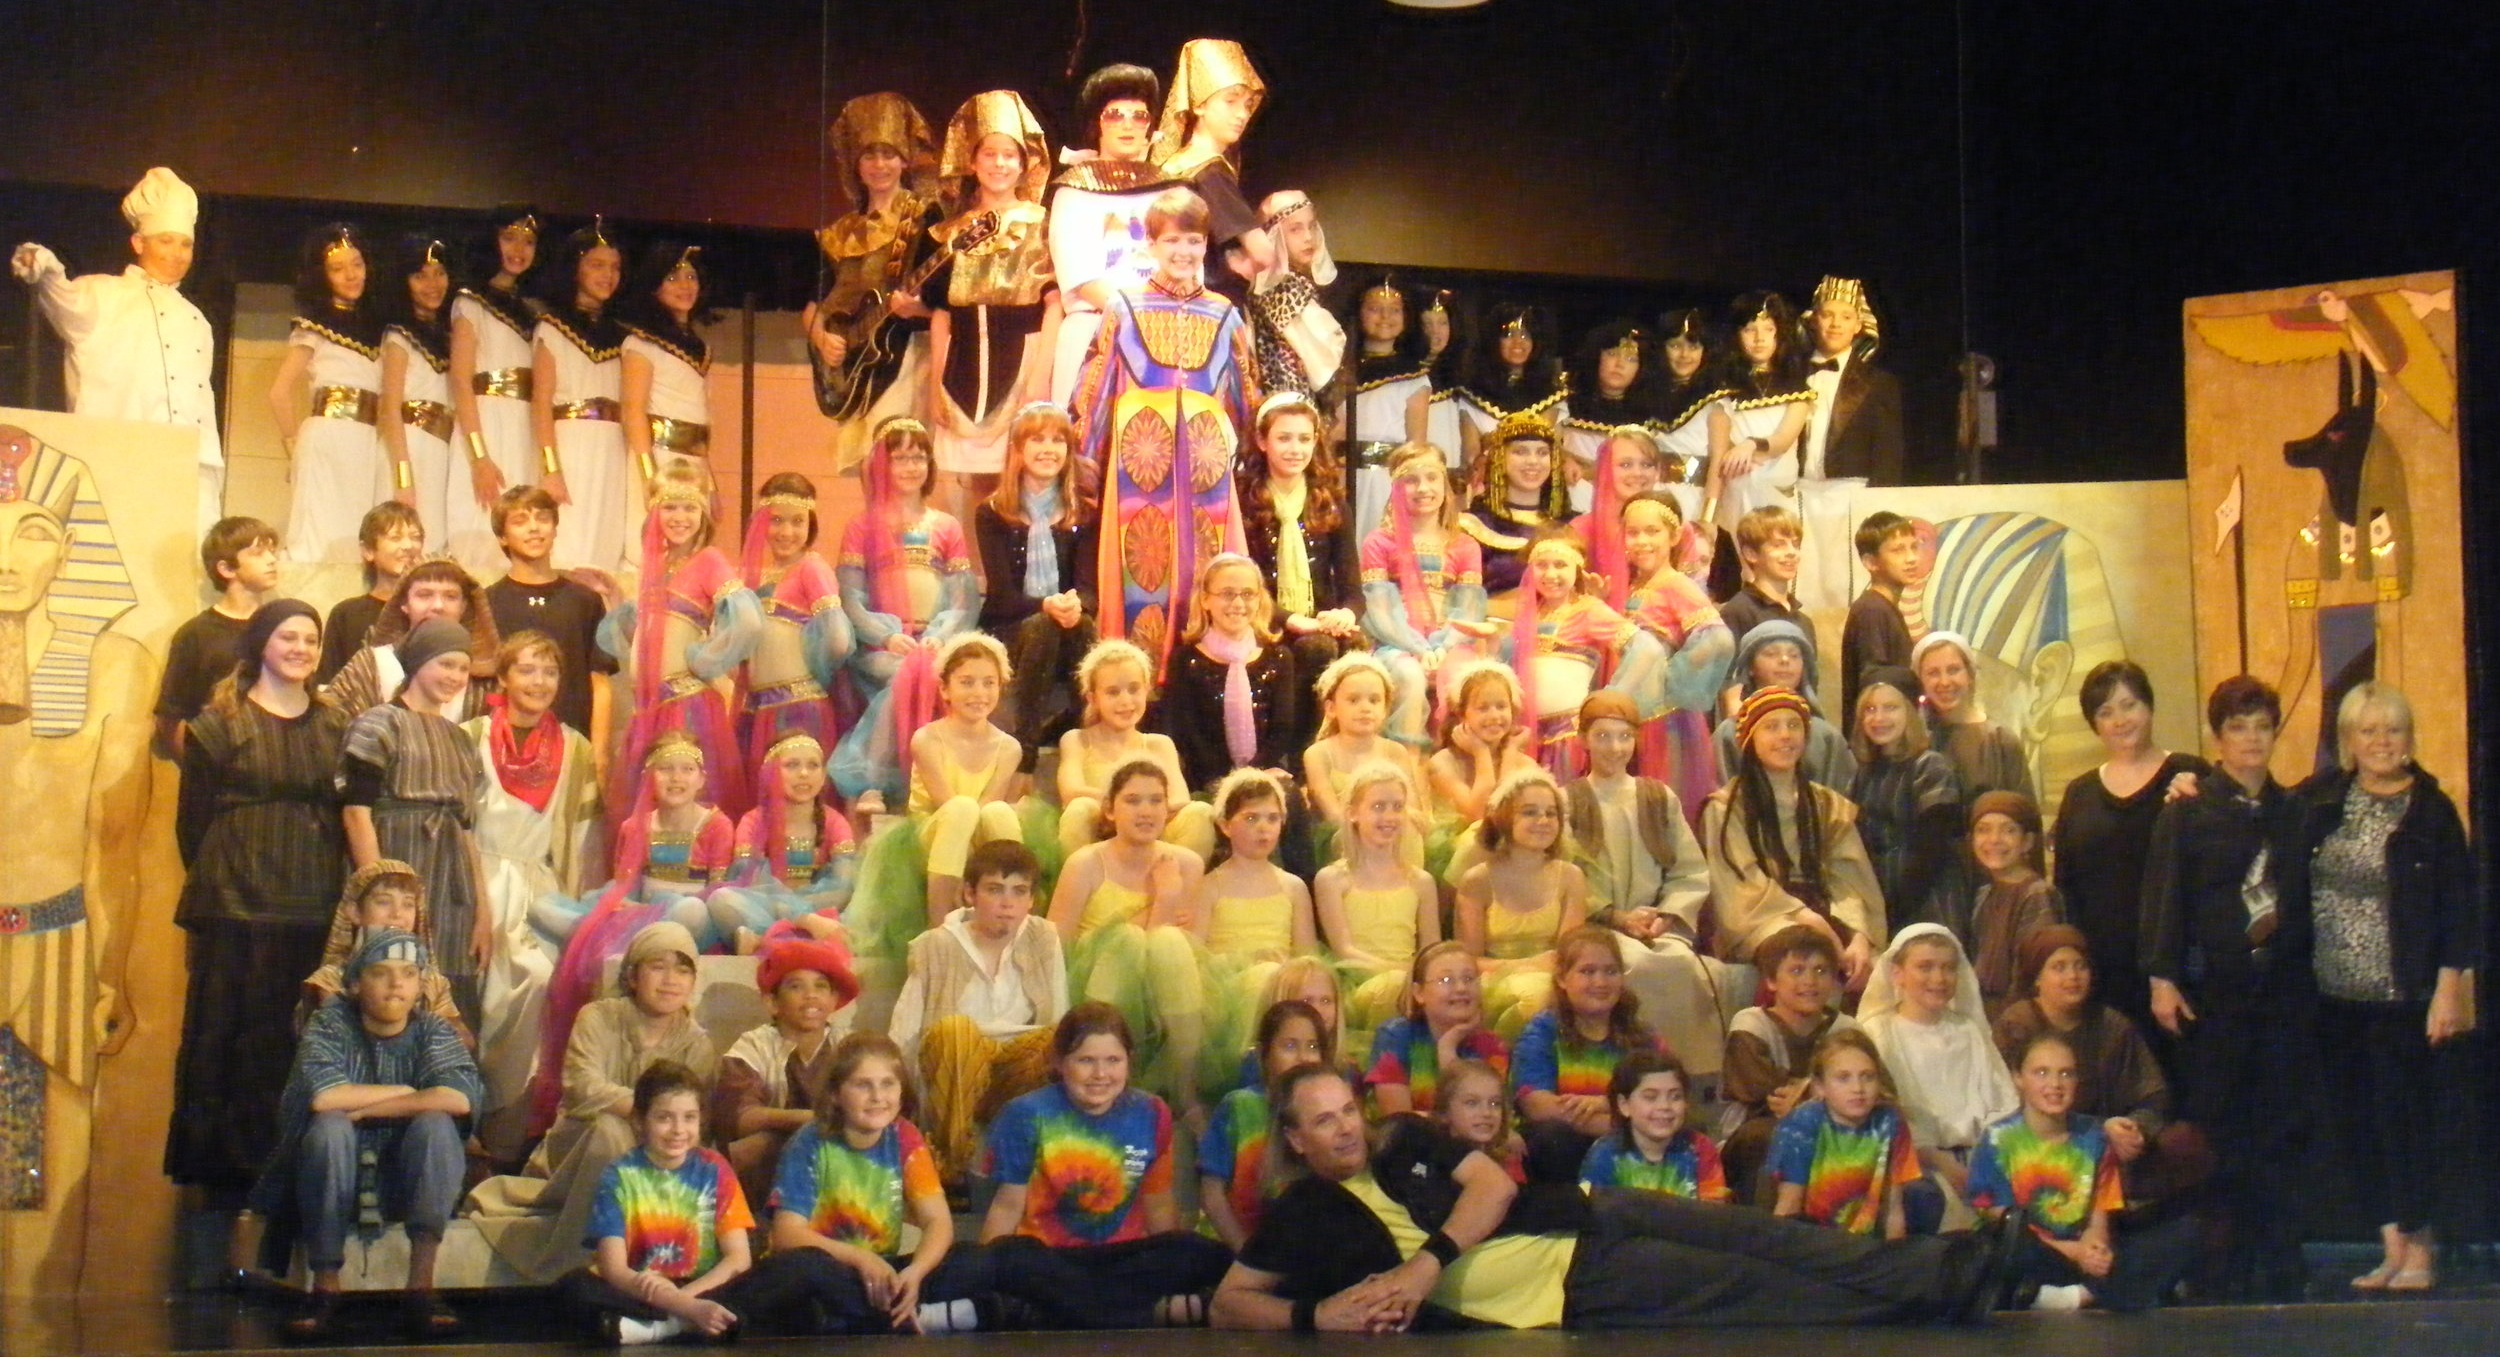 Joseph & the Amazing Technicolor Dreamcoat, Spring 2009